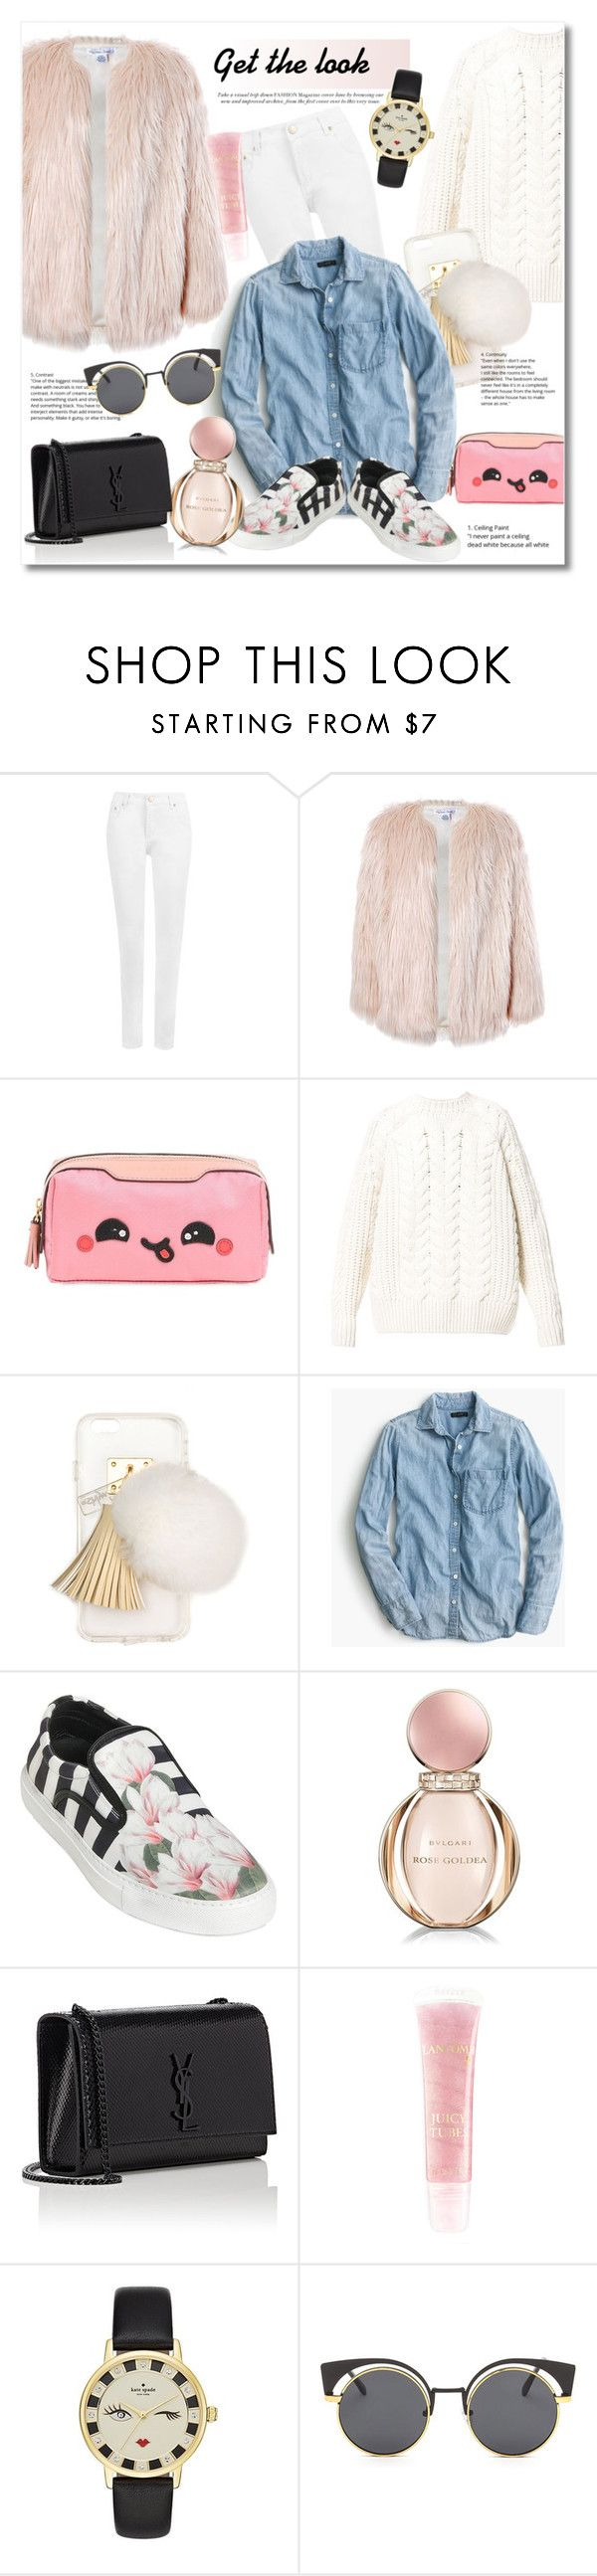 """""""Get the look"""" by vkmd ❤ liked on Polyvore featuring WearAll, Sans Souci, Anya Hindmarch, Diesel, Ashlyn'd, J.Crew, Mother of Pearl, Bulgari, Yves Saint Laurent and Kate Spade"""